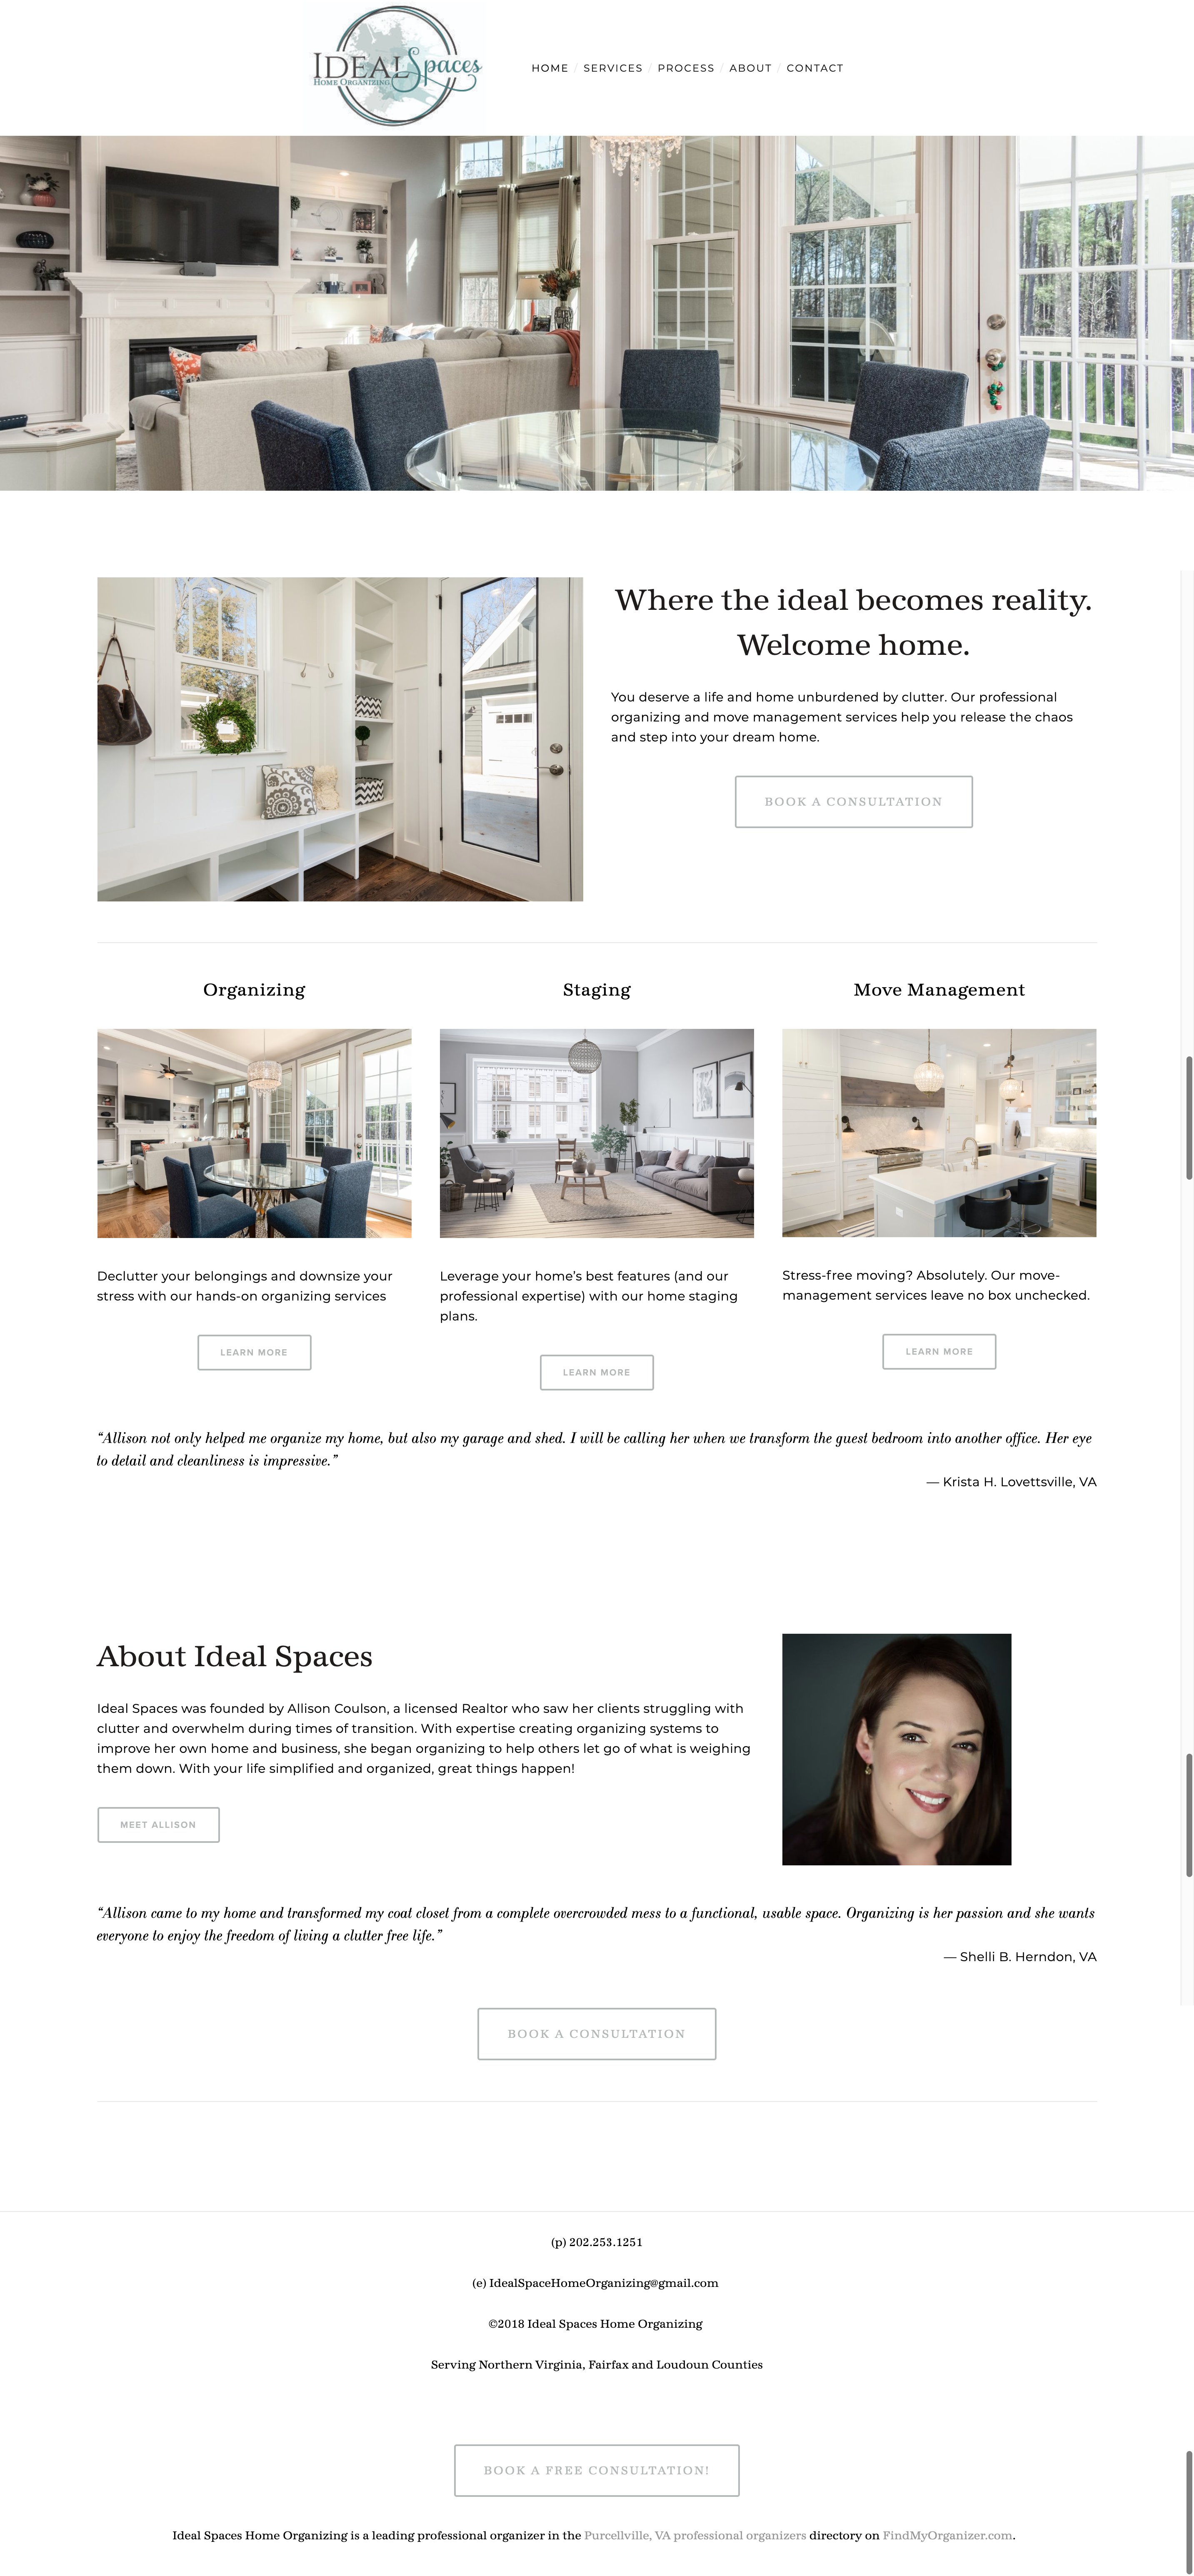 Website copy for a home stager and professional organizer in Virginia by The AgenShe